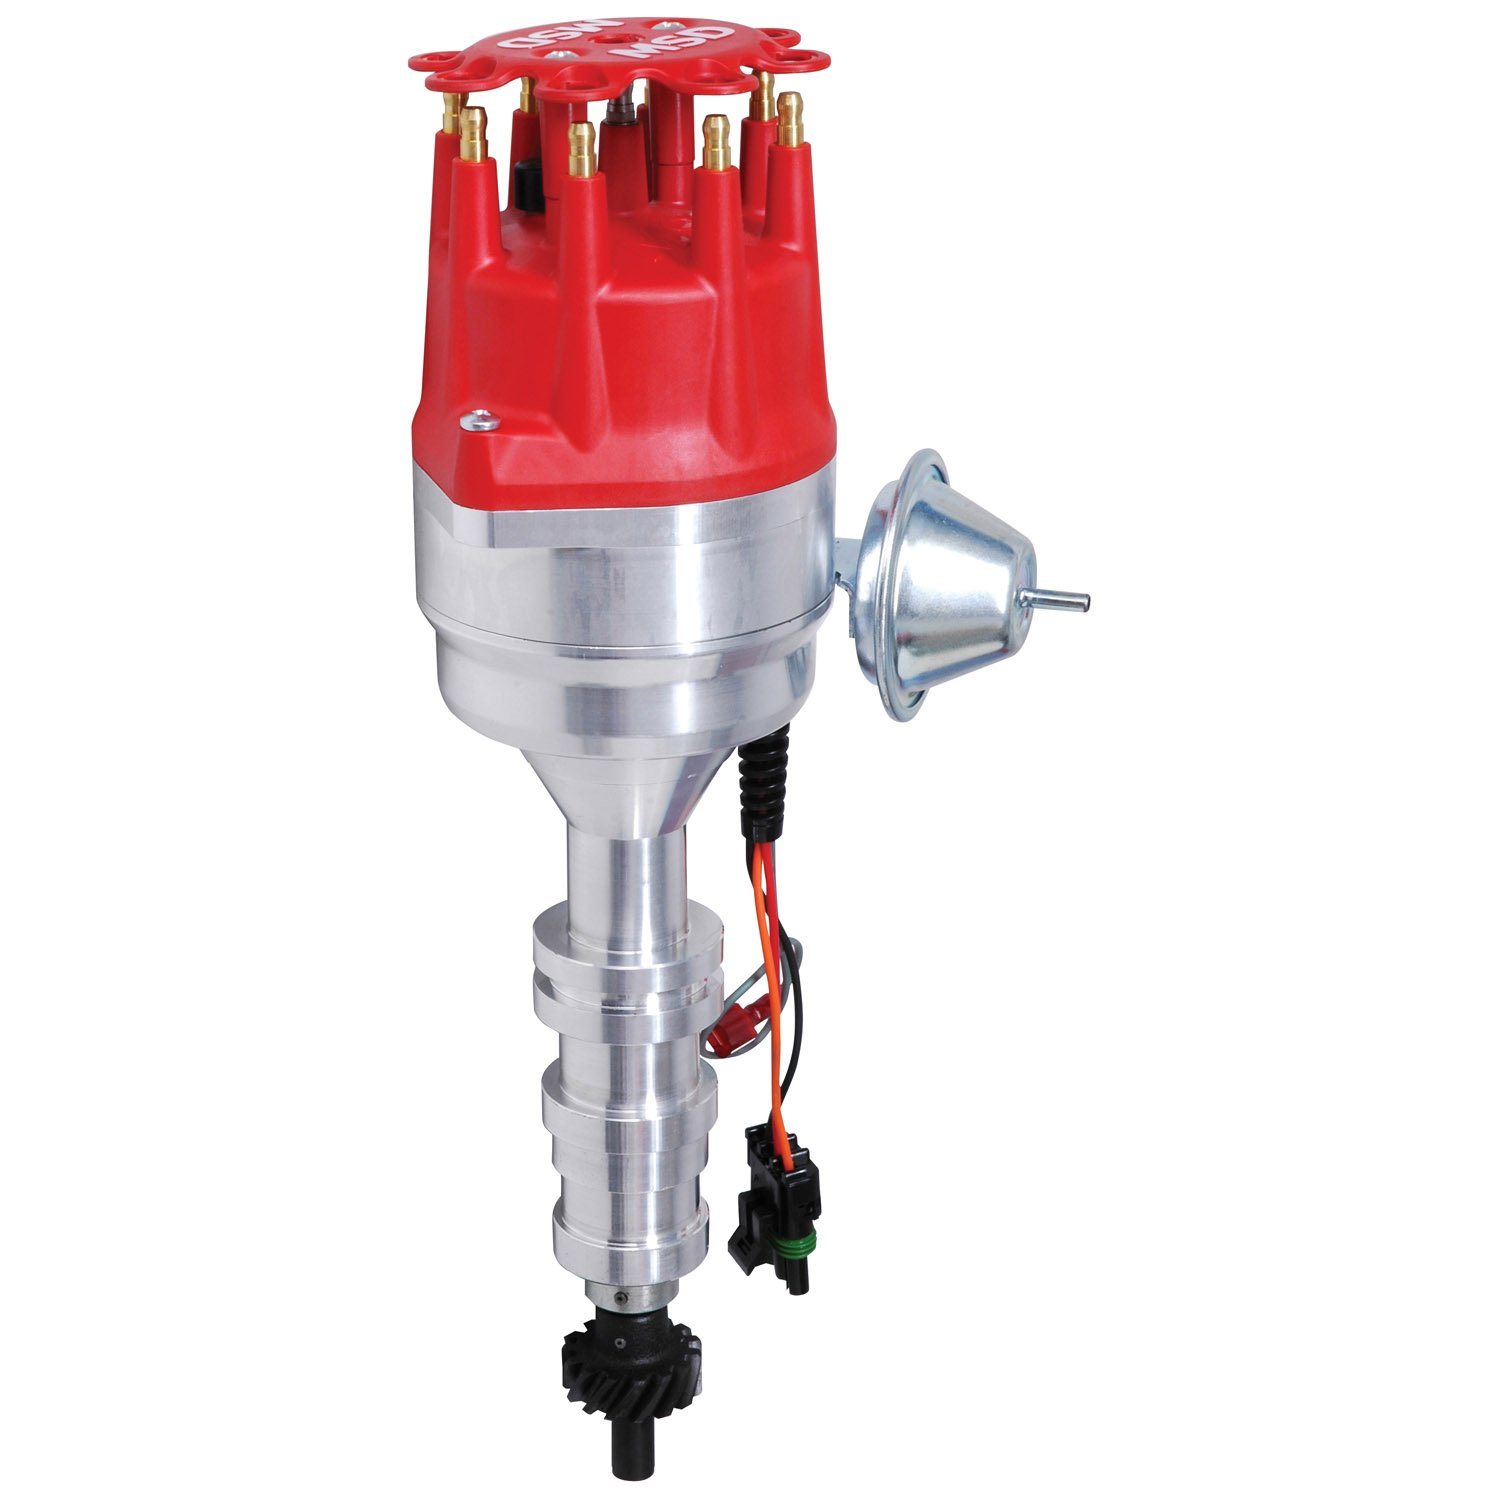 msd 8383 ford y block ready to run distributor 8383 ford y block ready to run distributor image